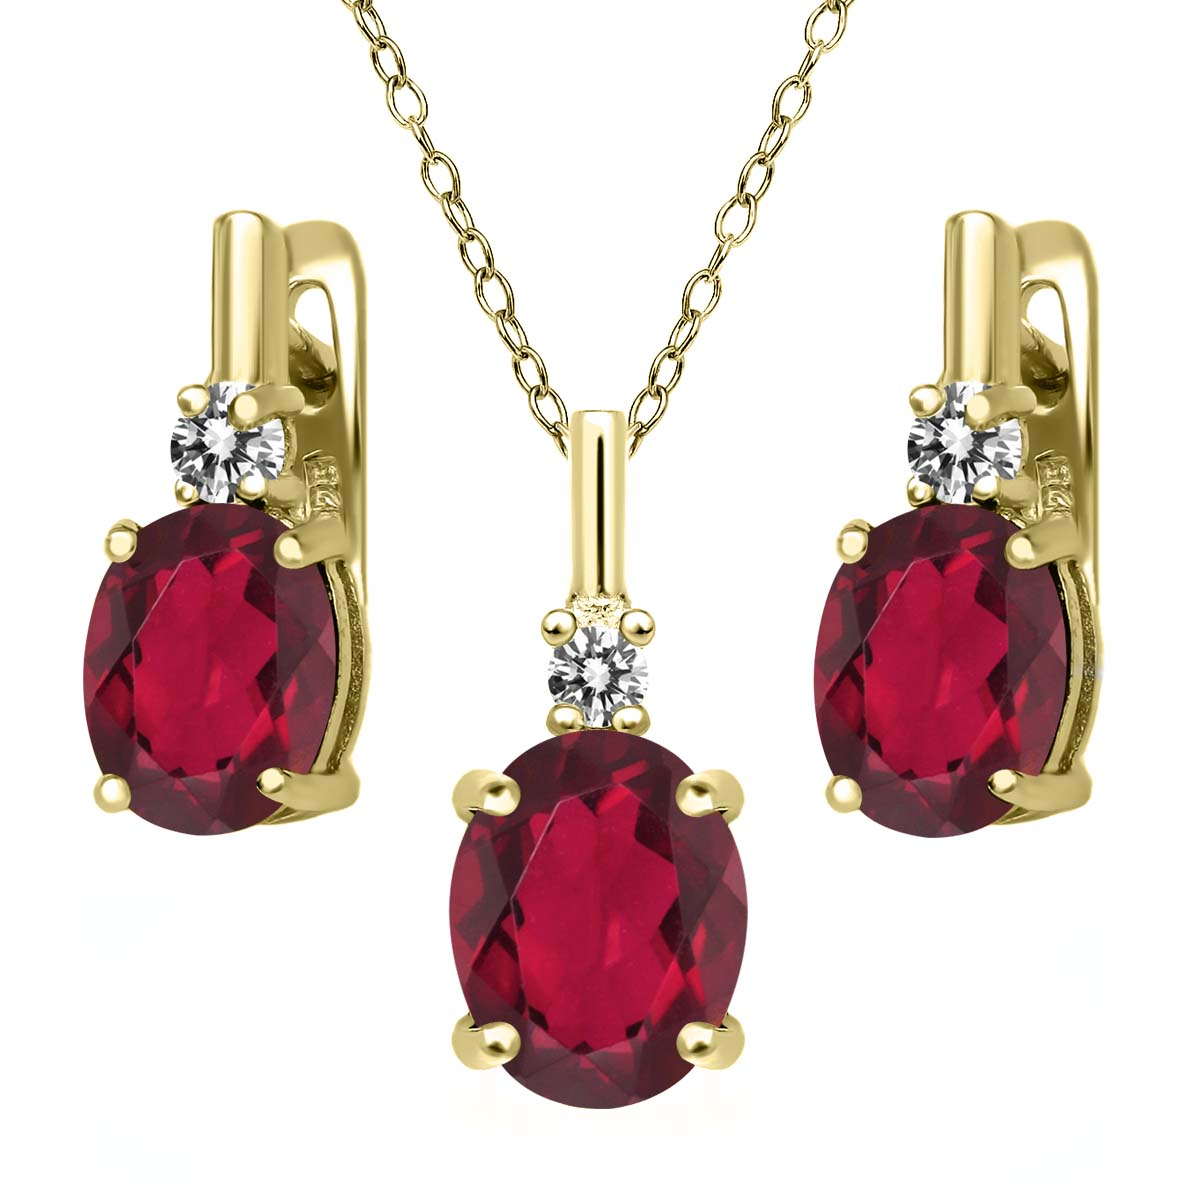 6.97 Ct Red Mystic Quartz White Diamond 18K Yellow Gold Plated Silver Pendant Earrings Set by